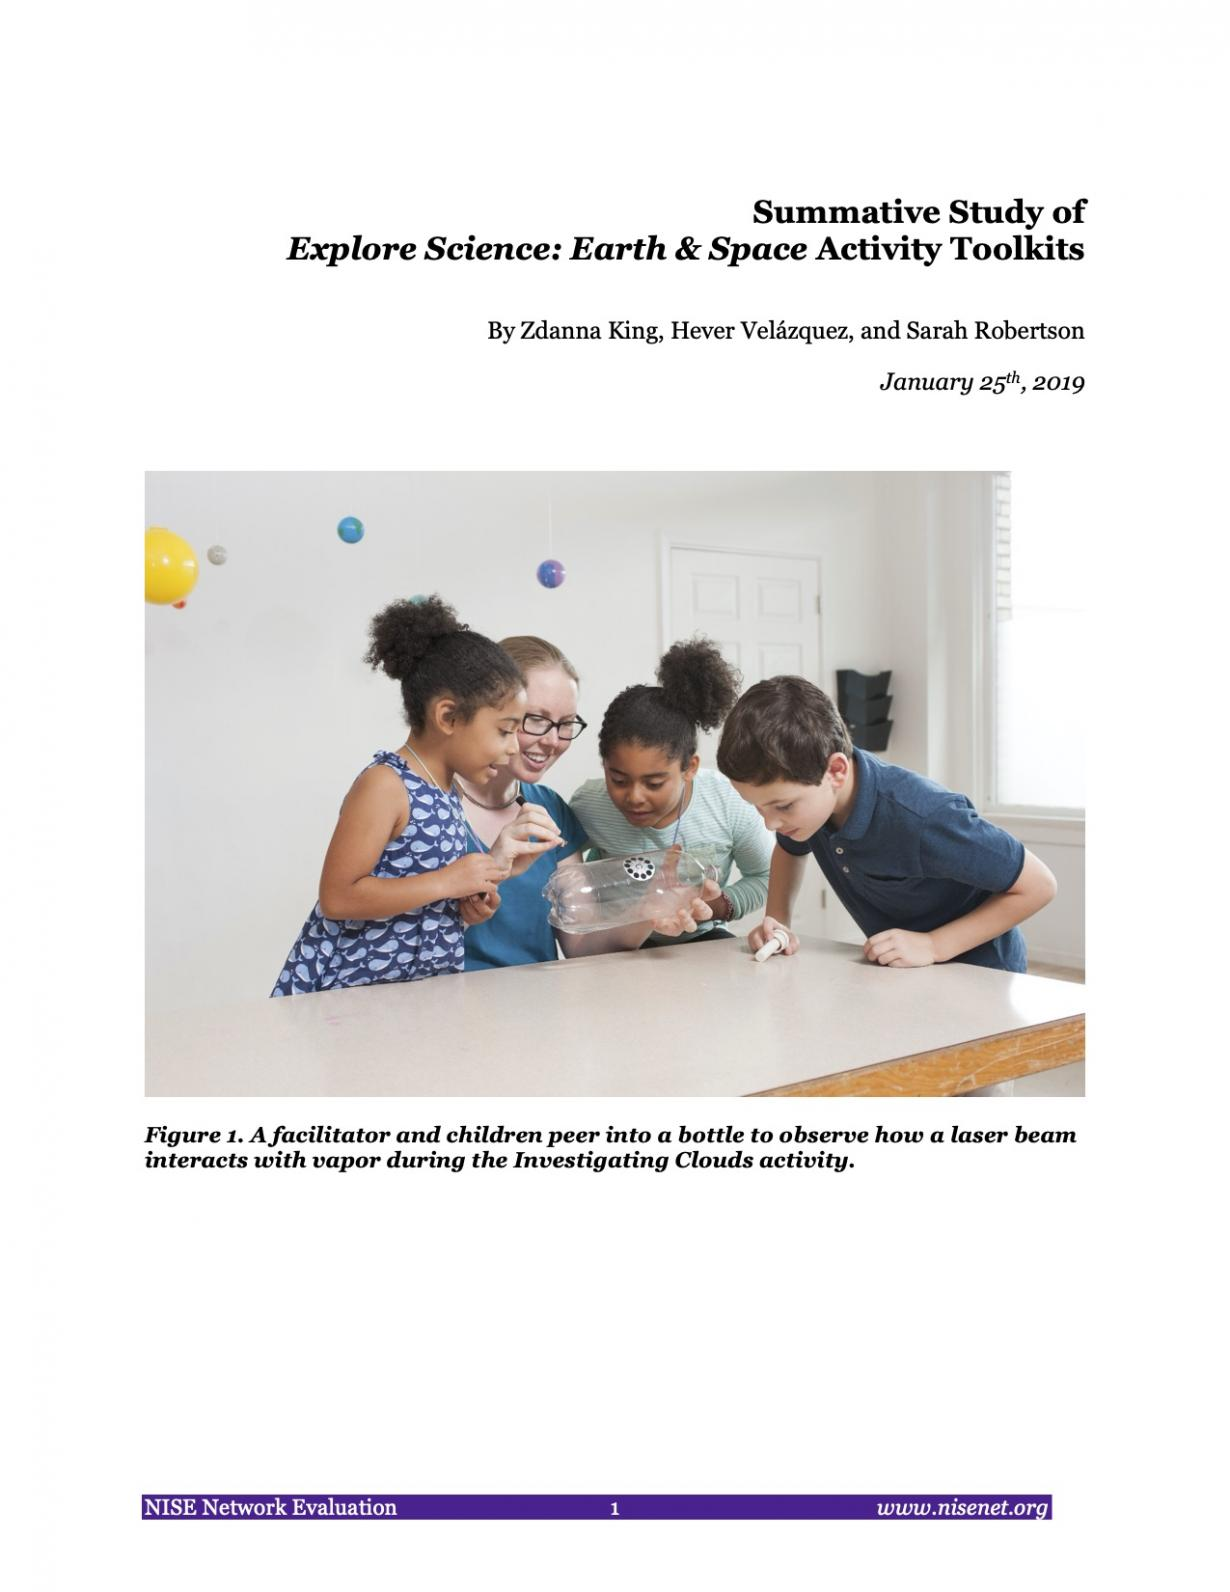 NISE Network SEISE Project Evaluation Earth and Space Toolkit Summative Evaluation cover